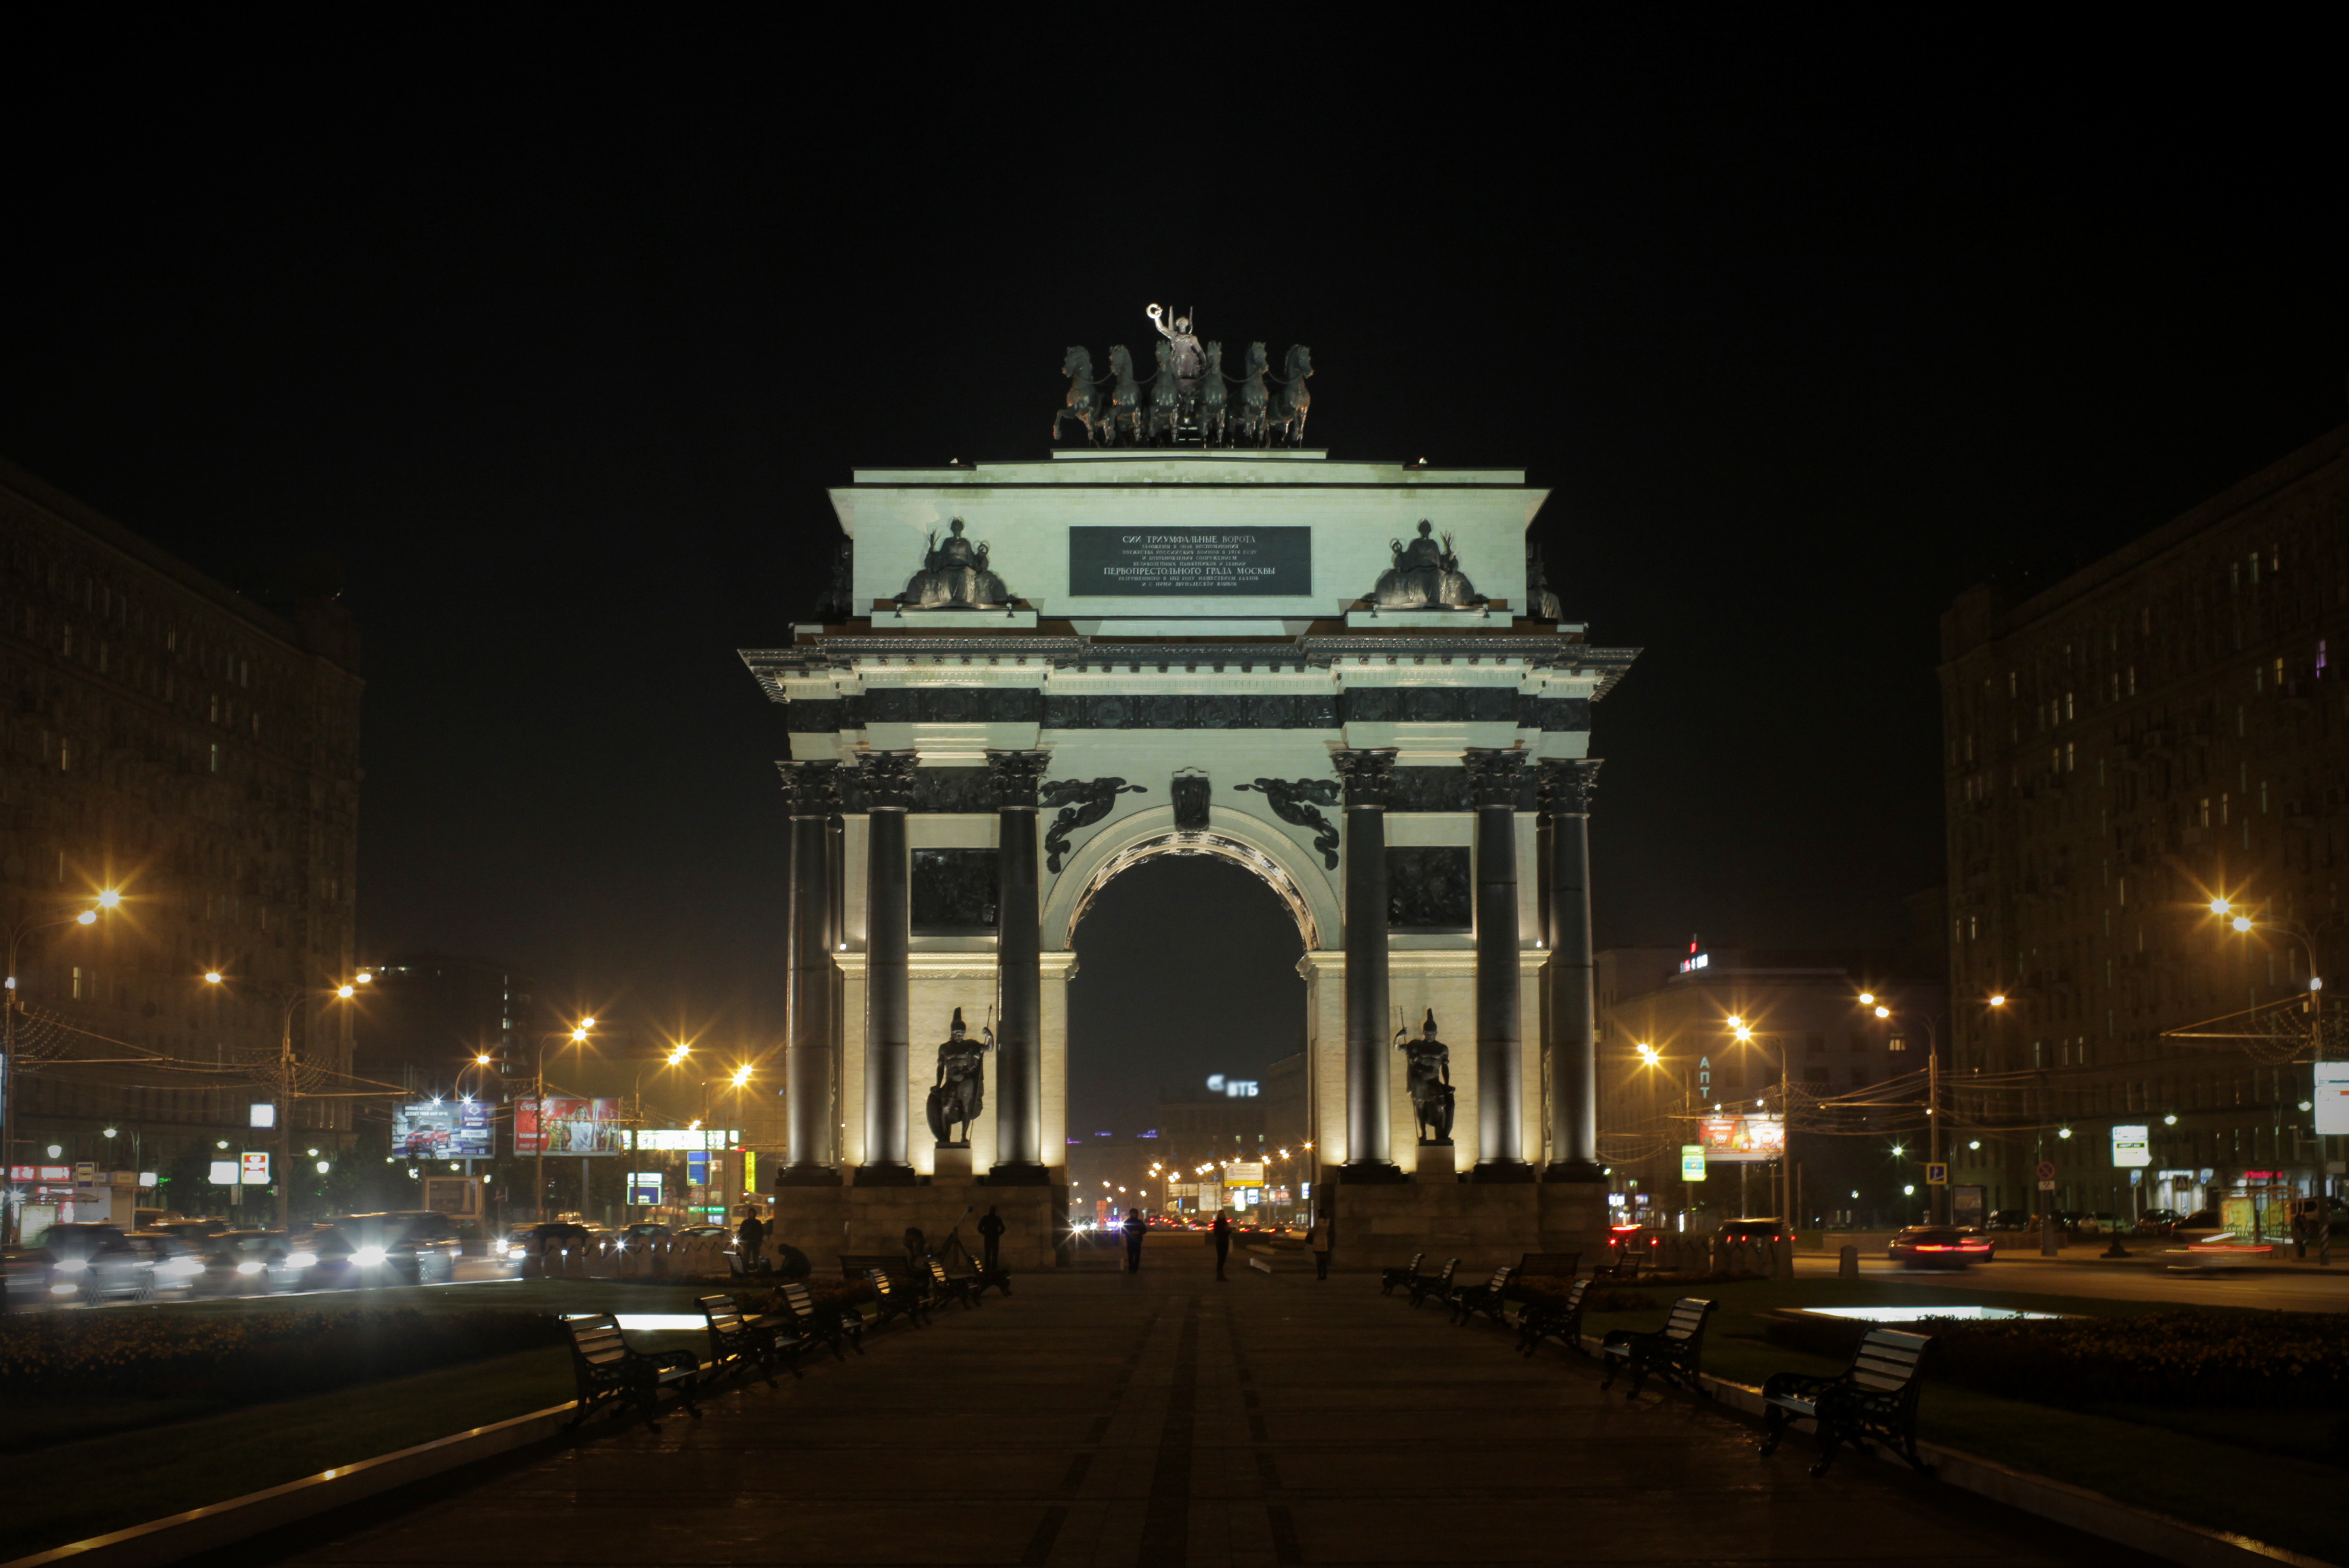 Triumphal Arch - Architectural Lighting Solution